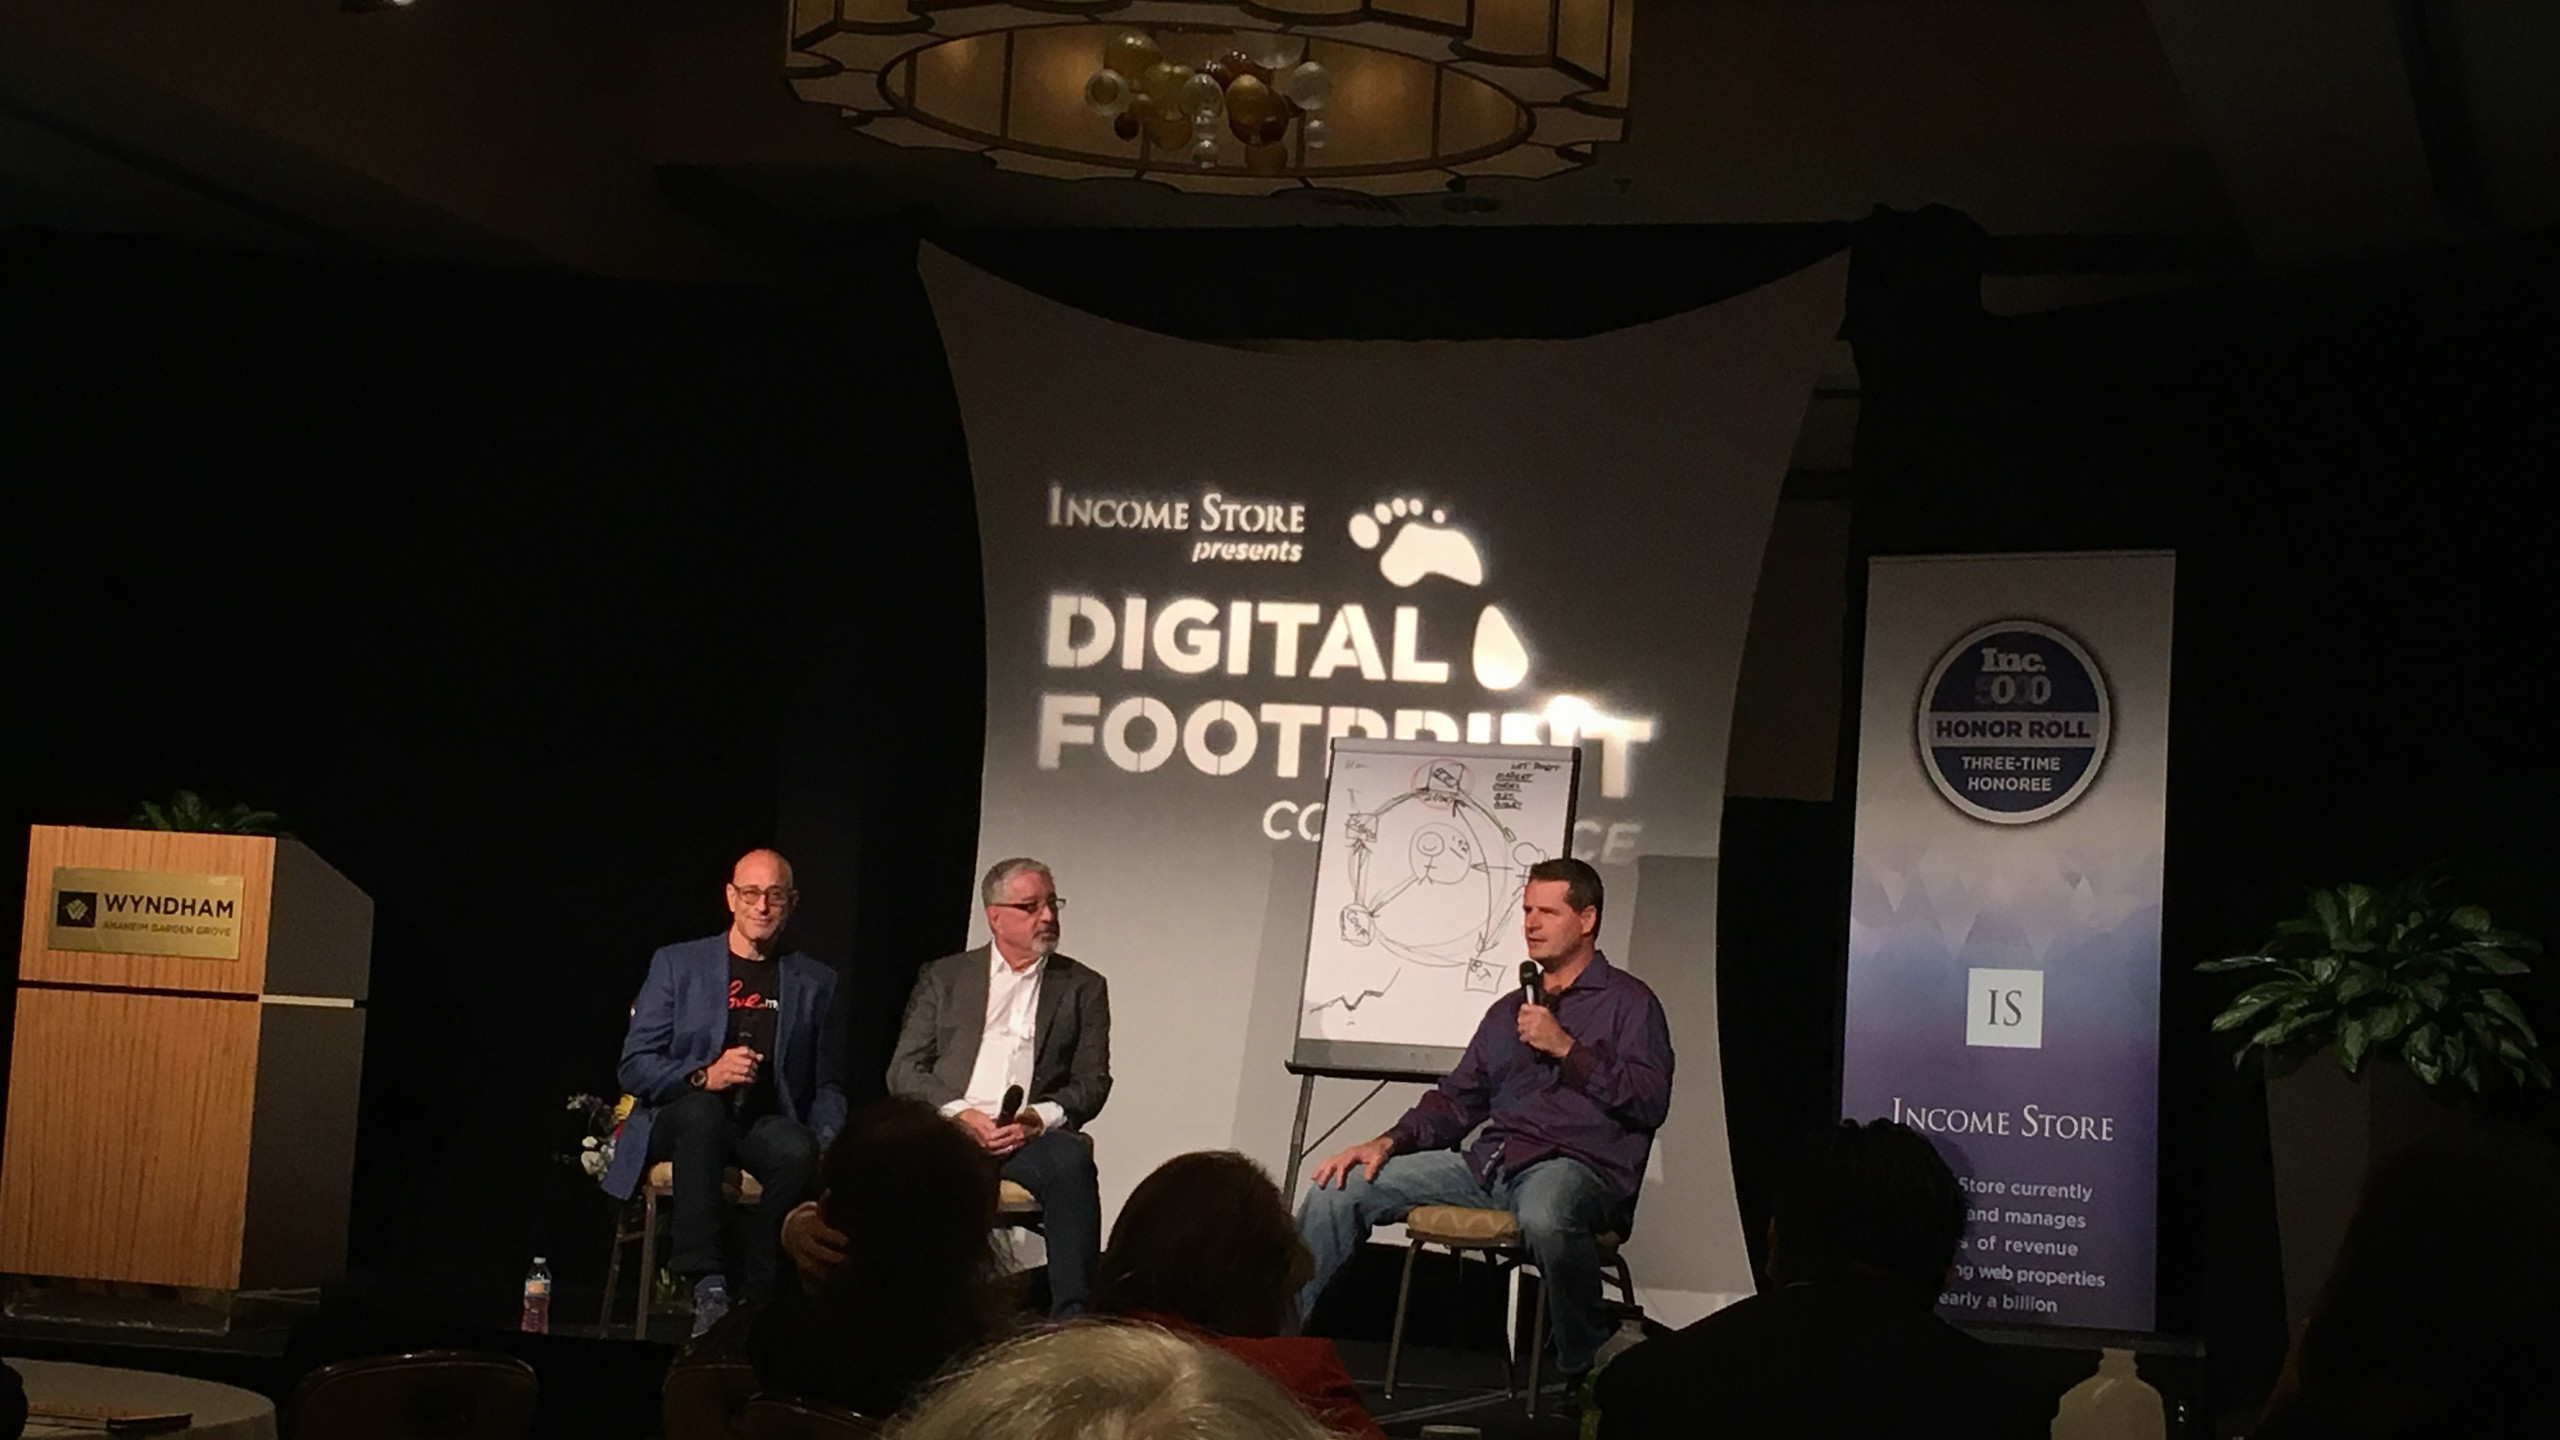 Ken Courtright, co-founder of Income Store, Berny Dohrmann, co-founder of CEO Space, and Adam Markel, author of Pivot, at Digital Footprint Conference